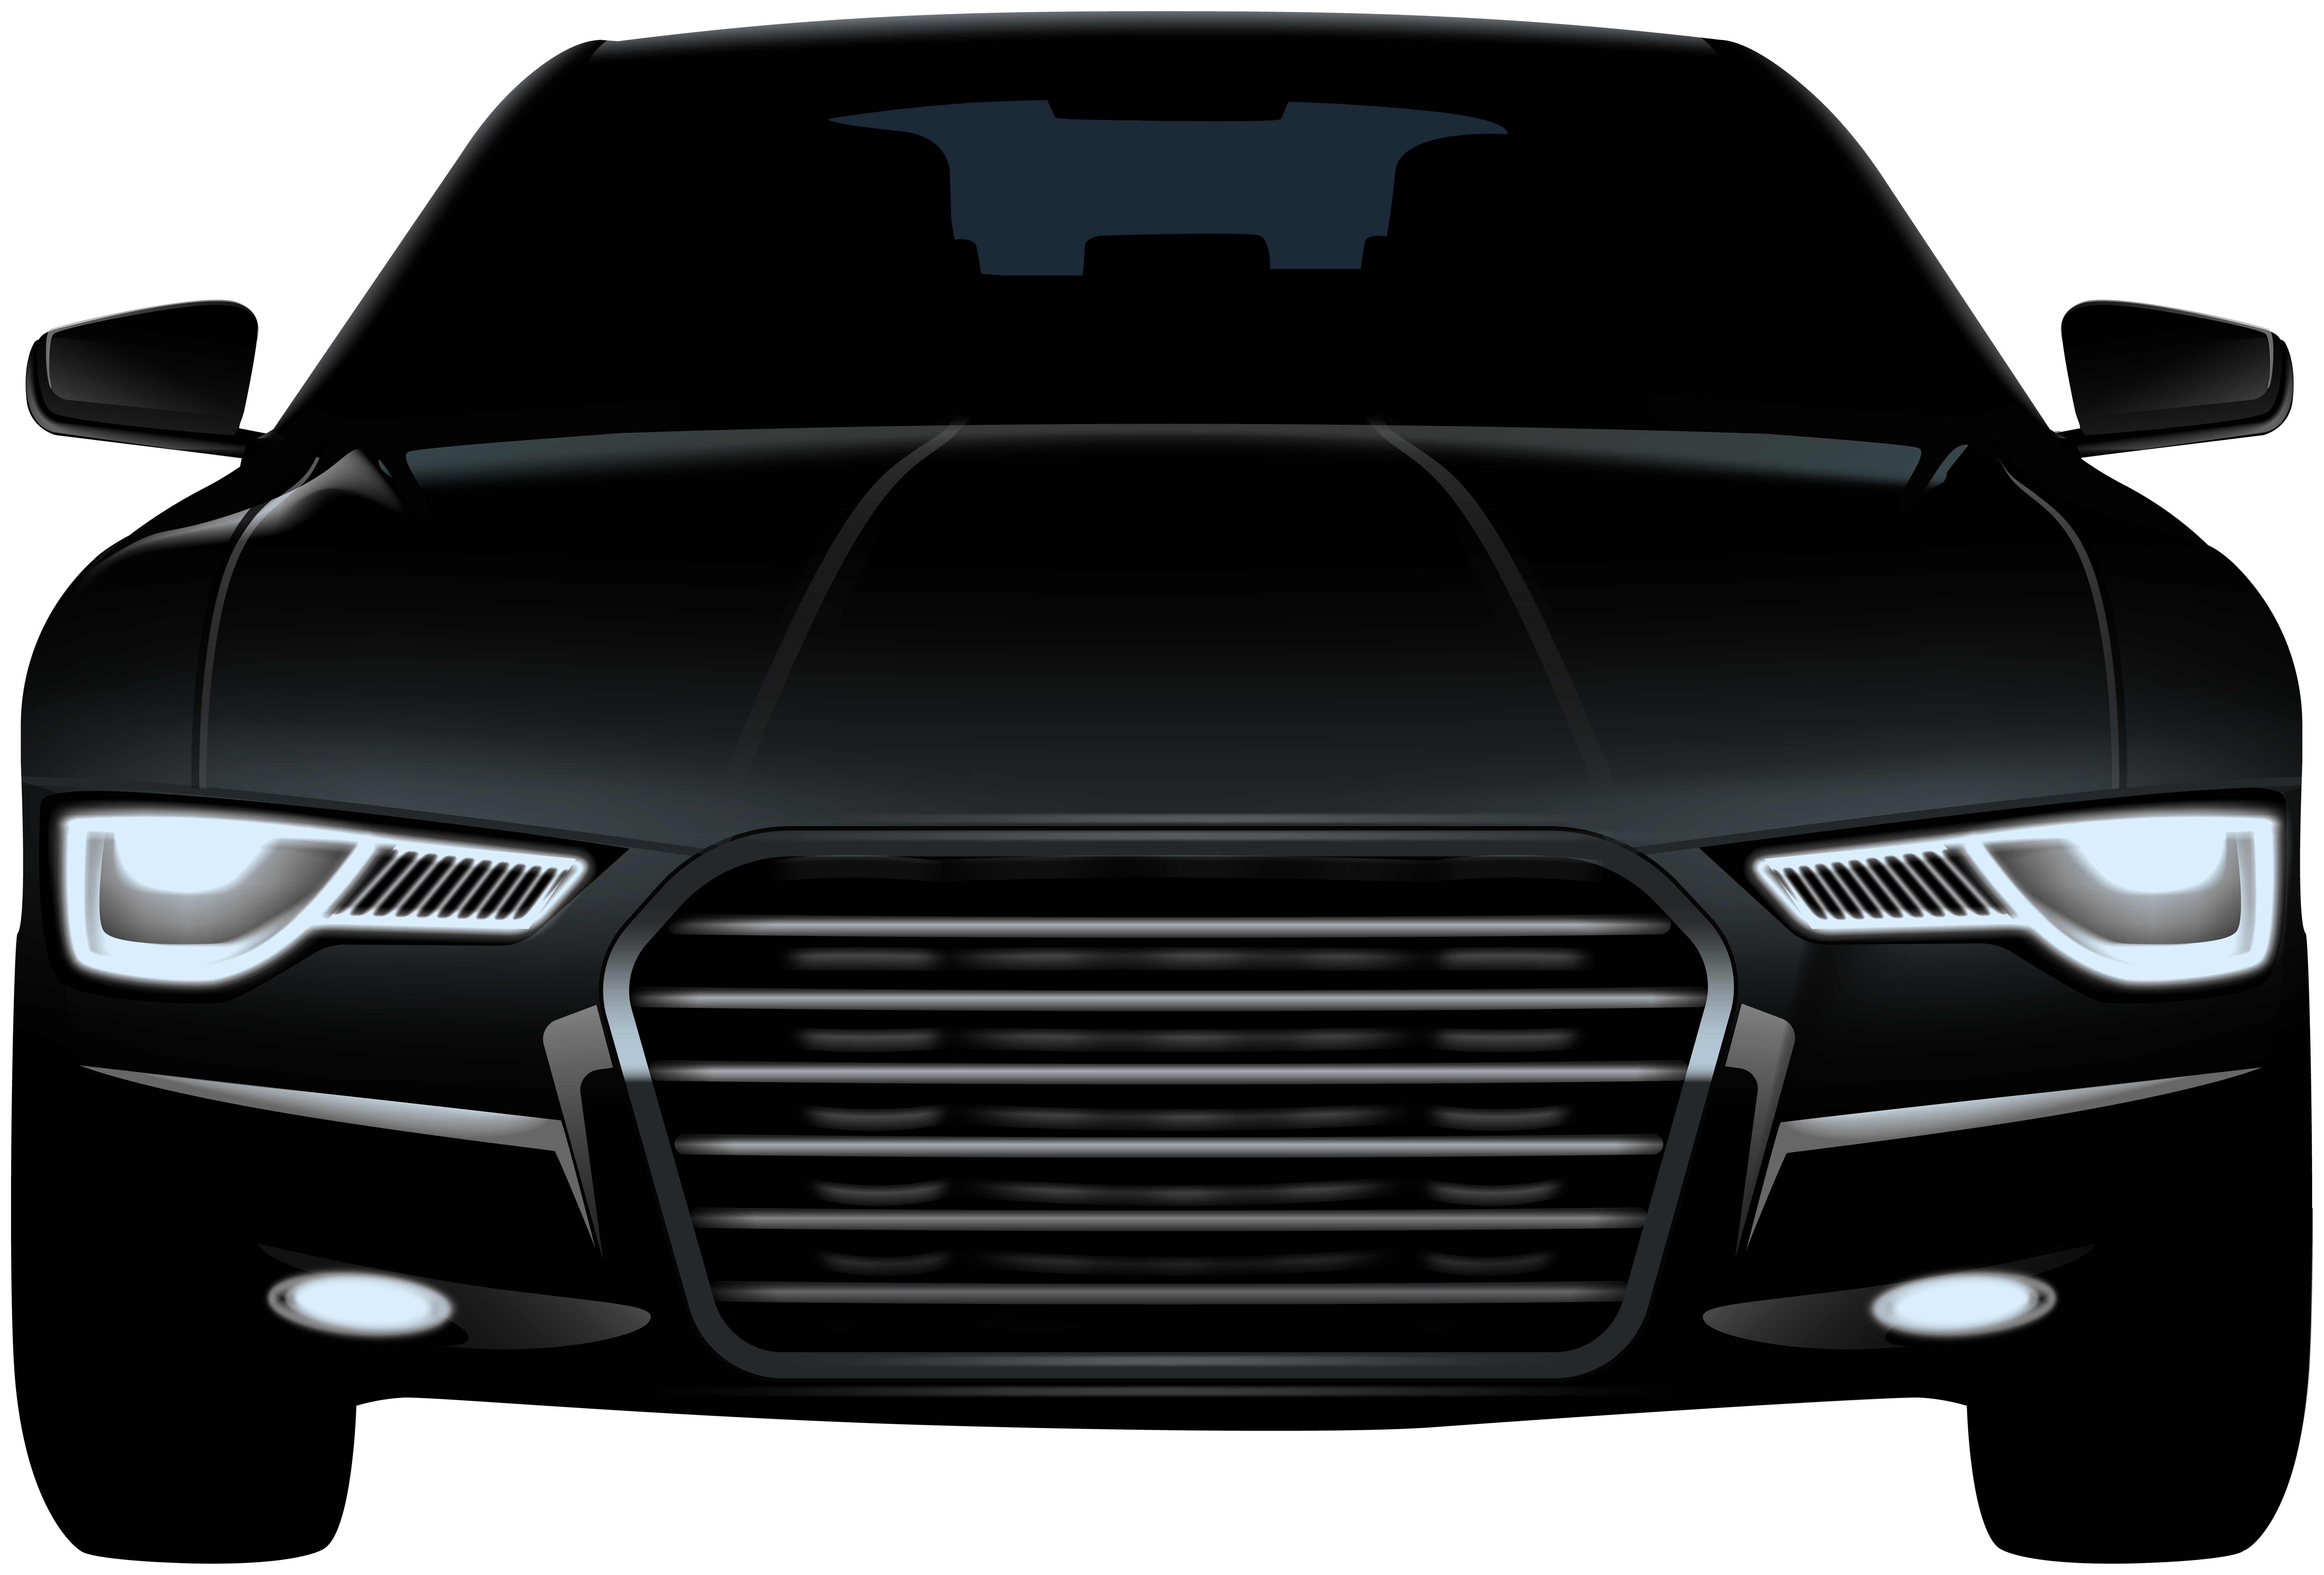 Transparent car front view clipart png library library Black Sedan Front Car PNG Clip Art - Best WEB Clipart png library library